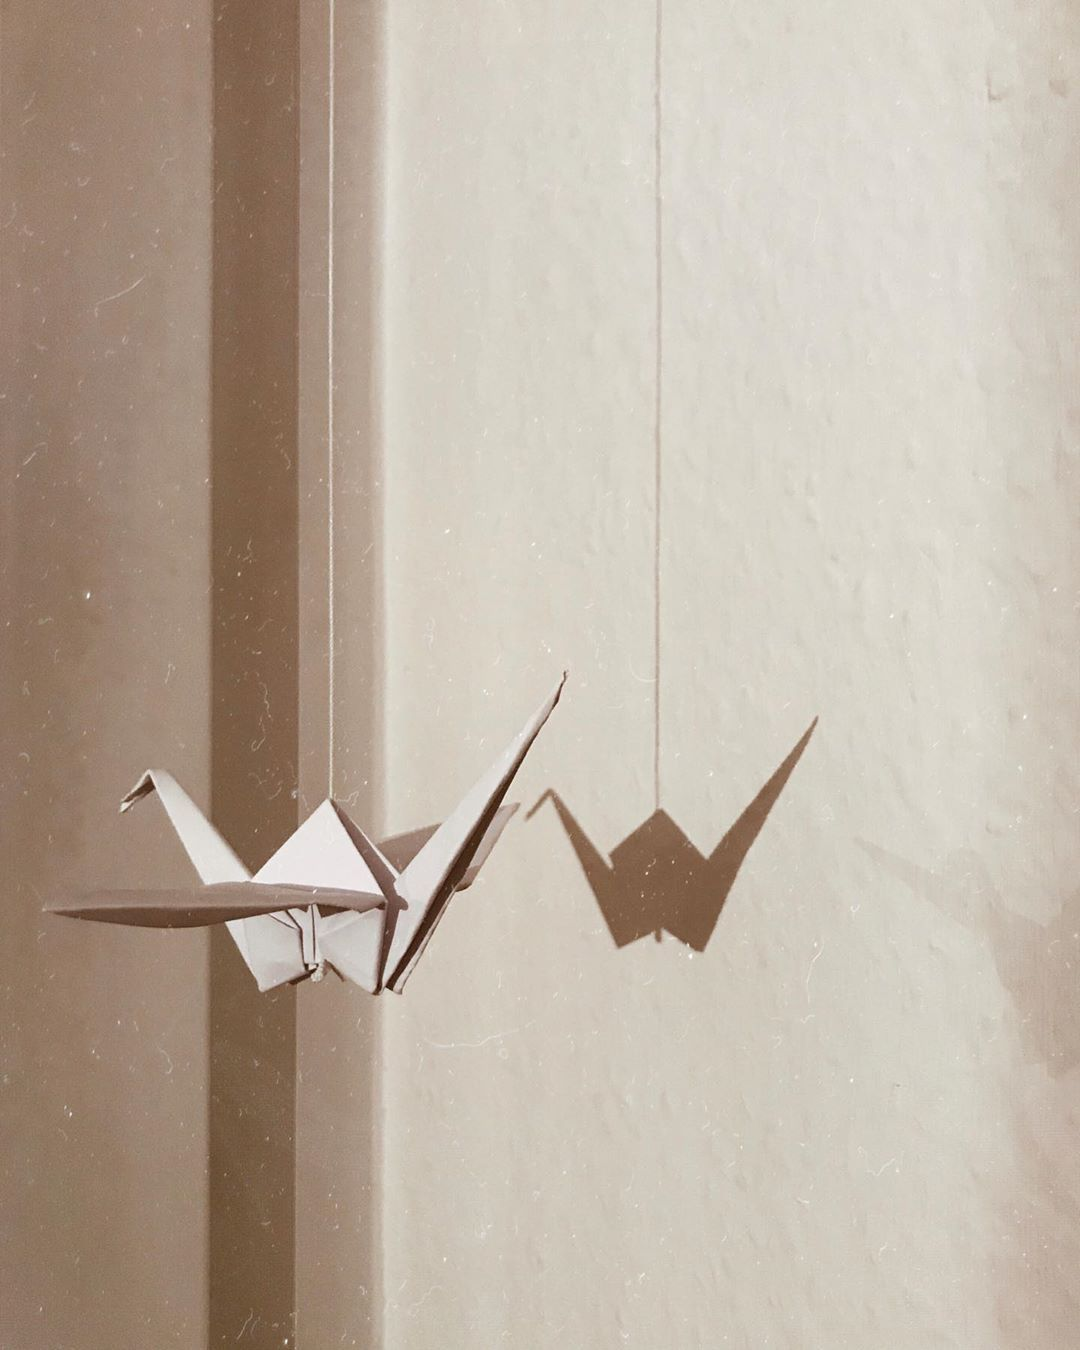 Diy Design Objects: Pin By Audrey Holstead On Future Home In 2020